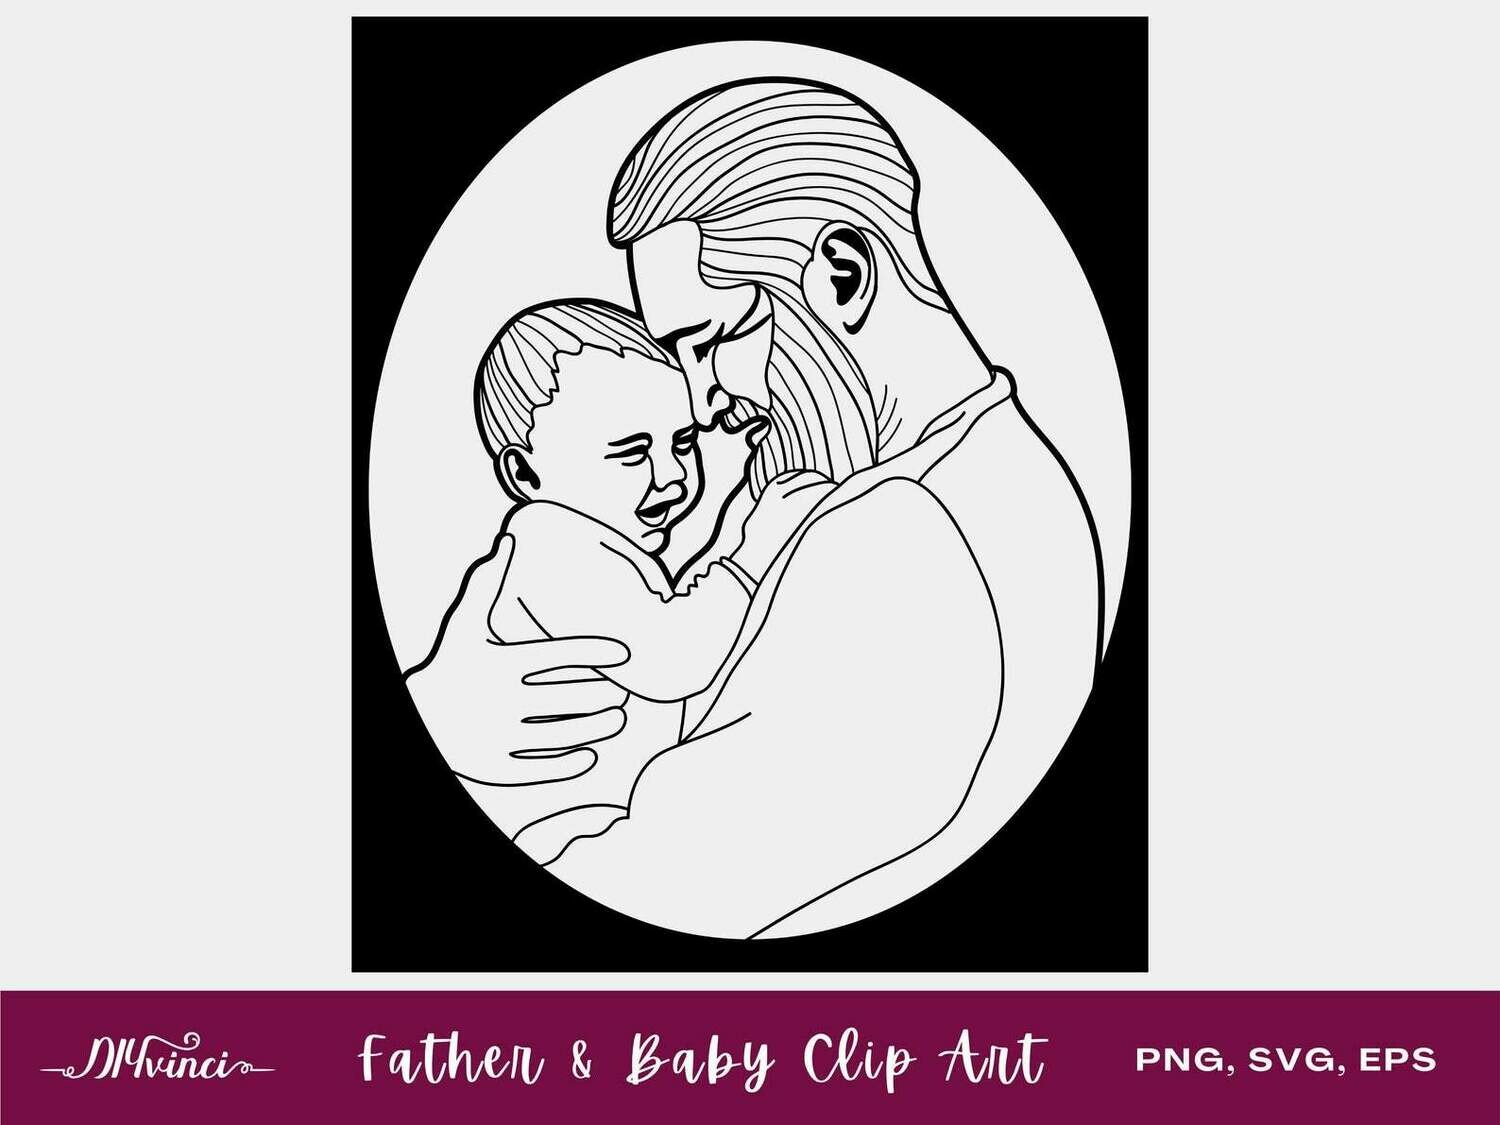 Father and Baby Clip Art - PNG, SVG, EPS - Personal & Commercial Use